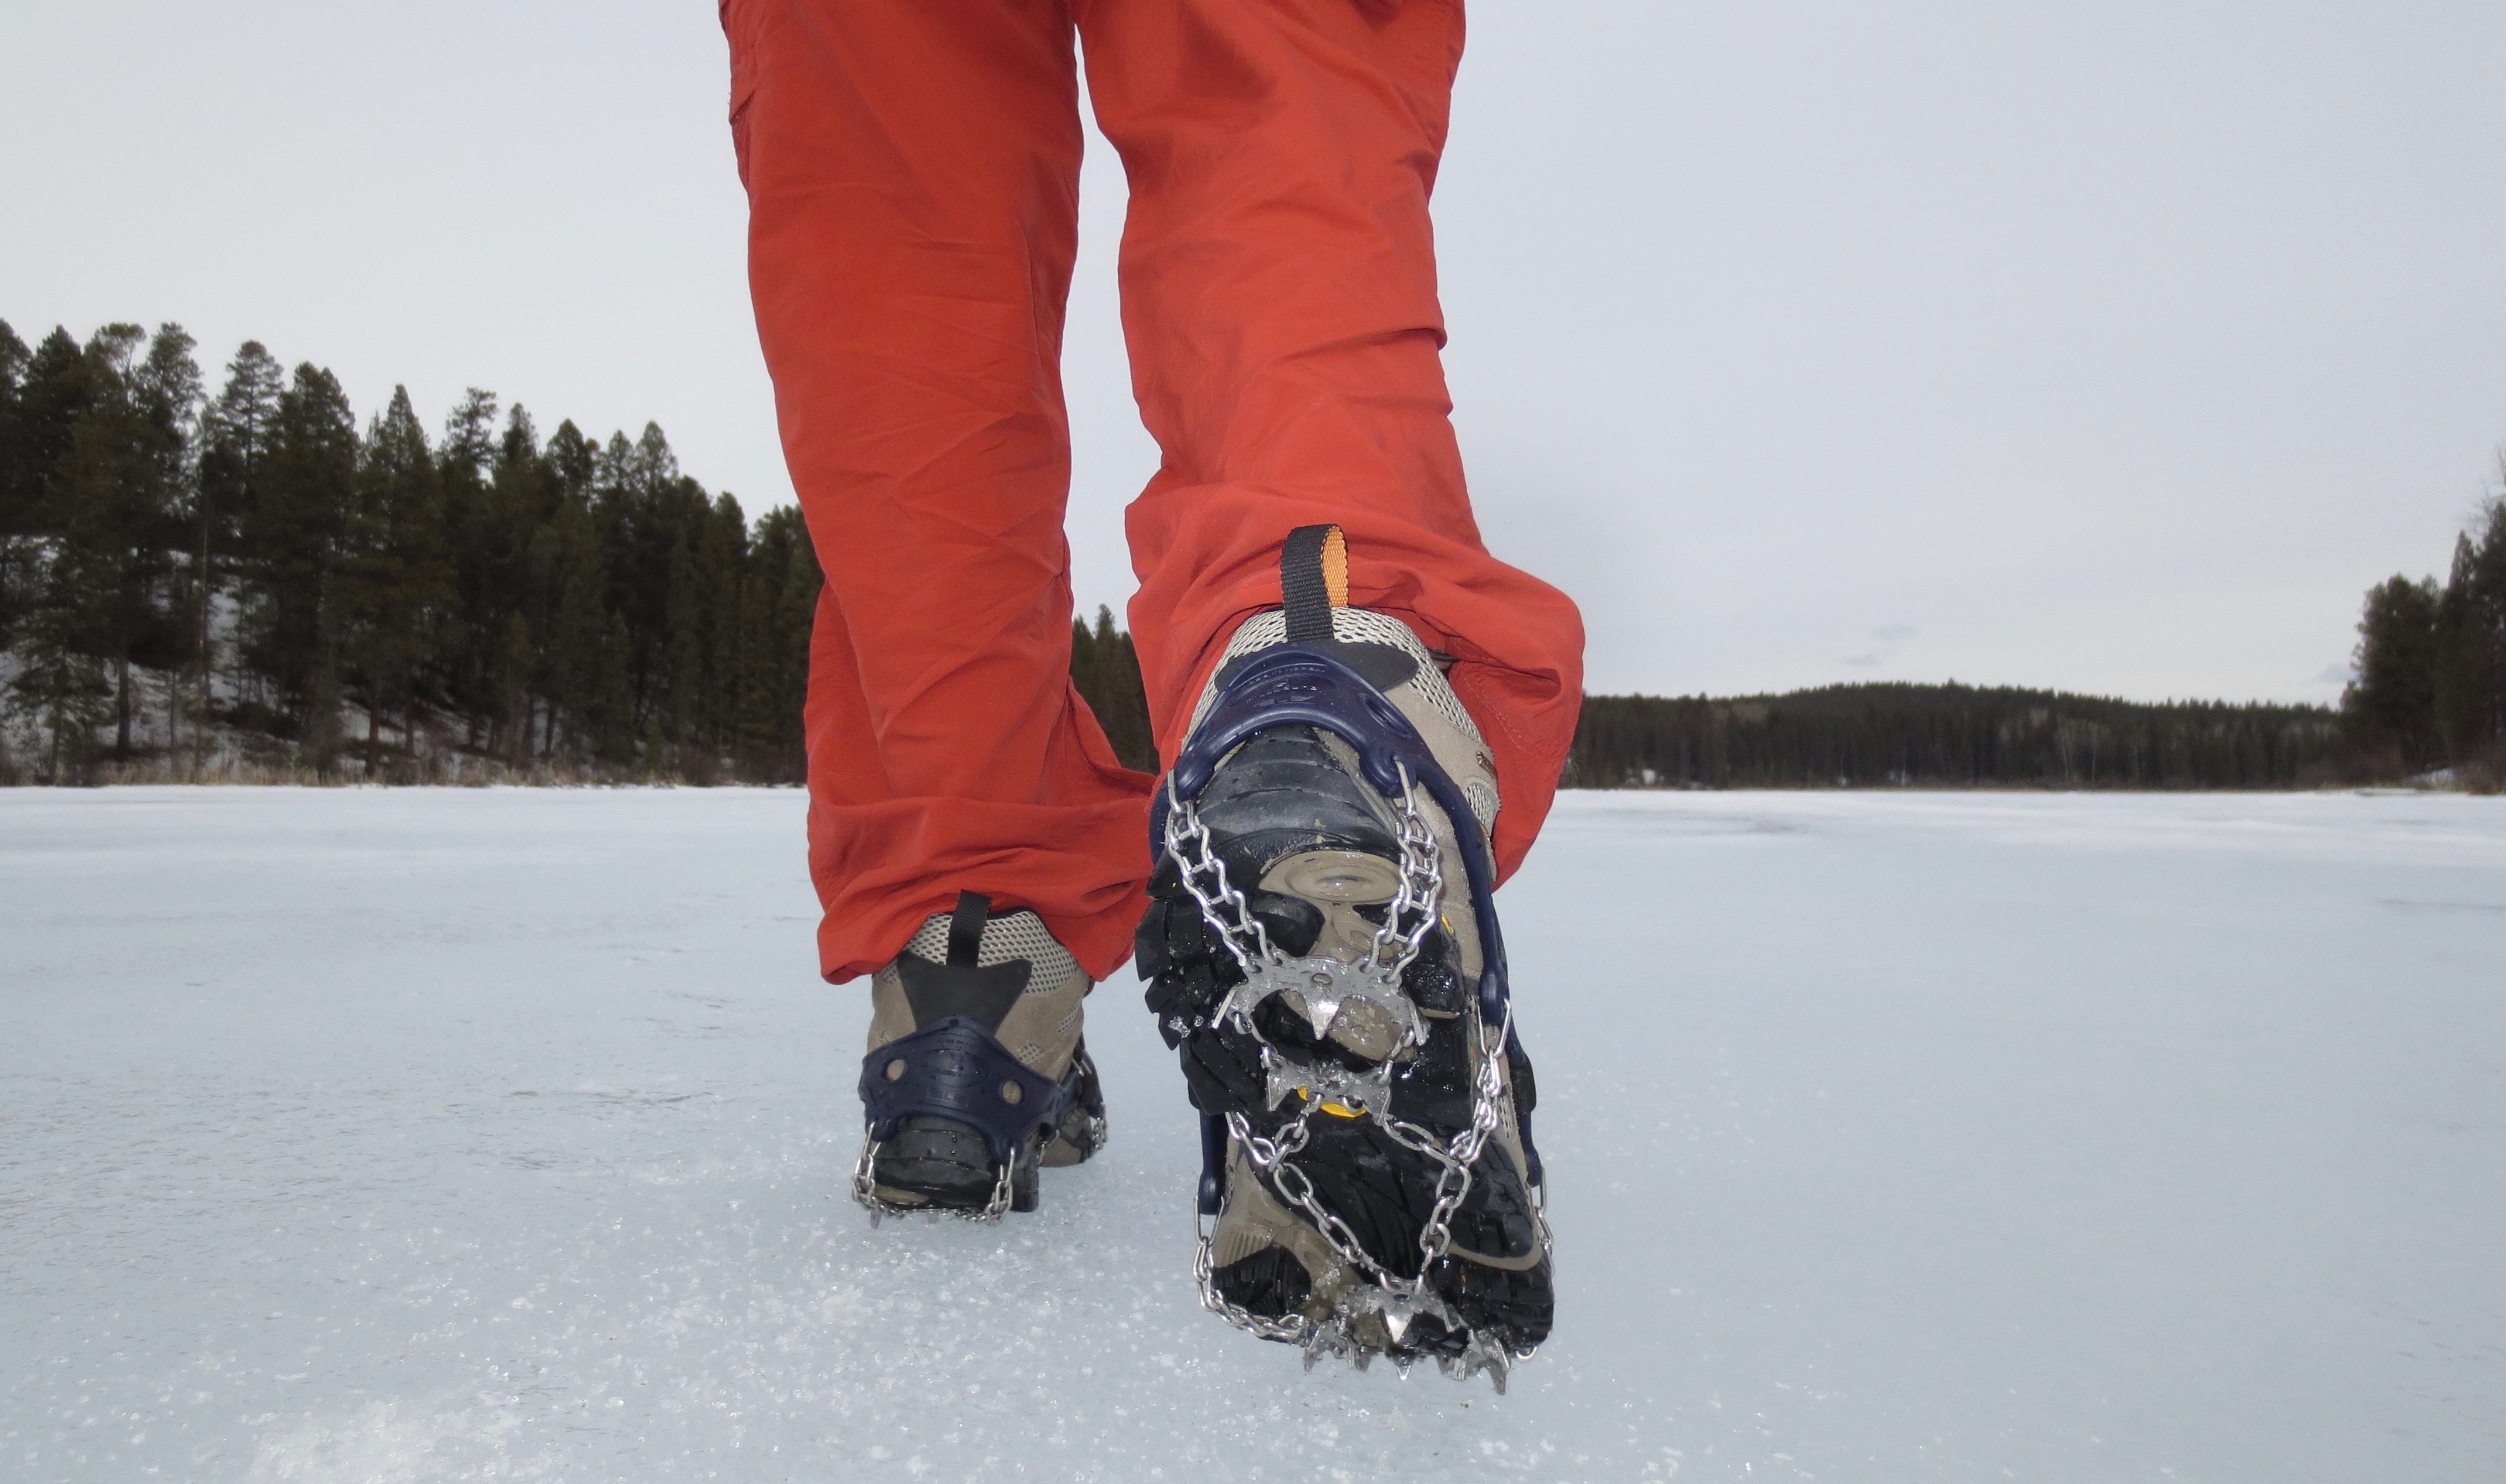 Spring hiking with crampons